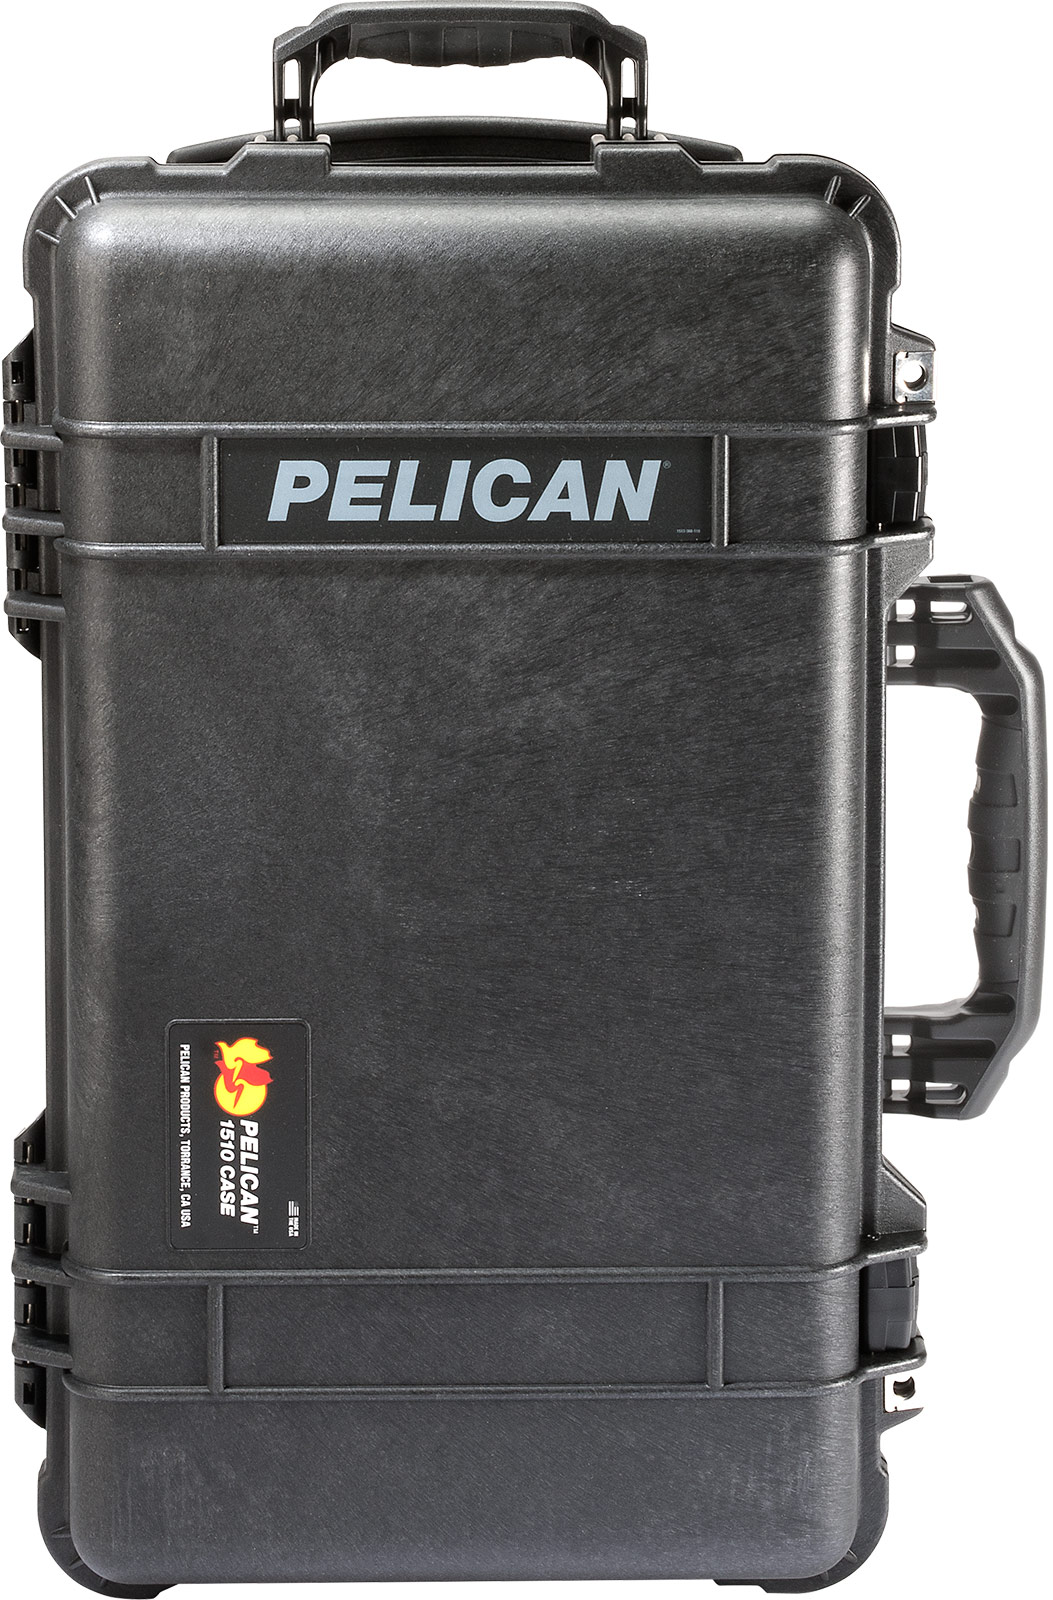 pelican 1510 cases carry on cases travel